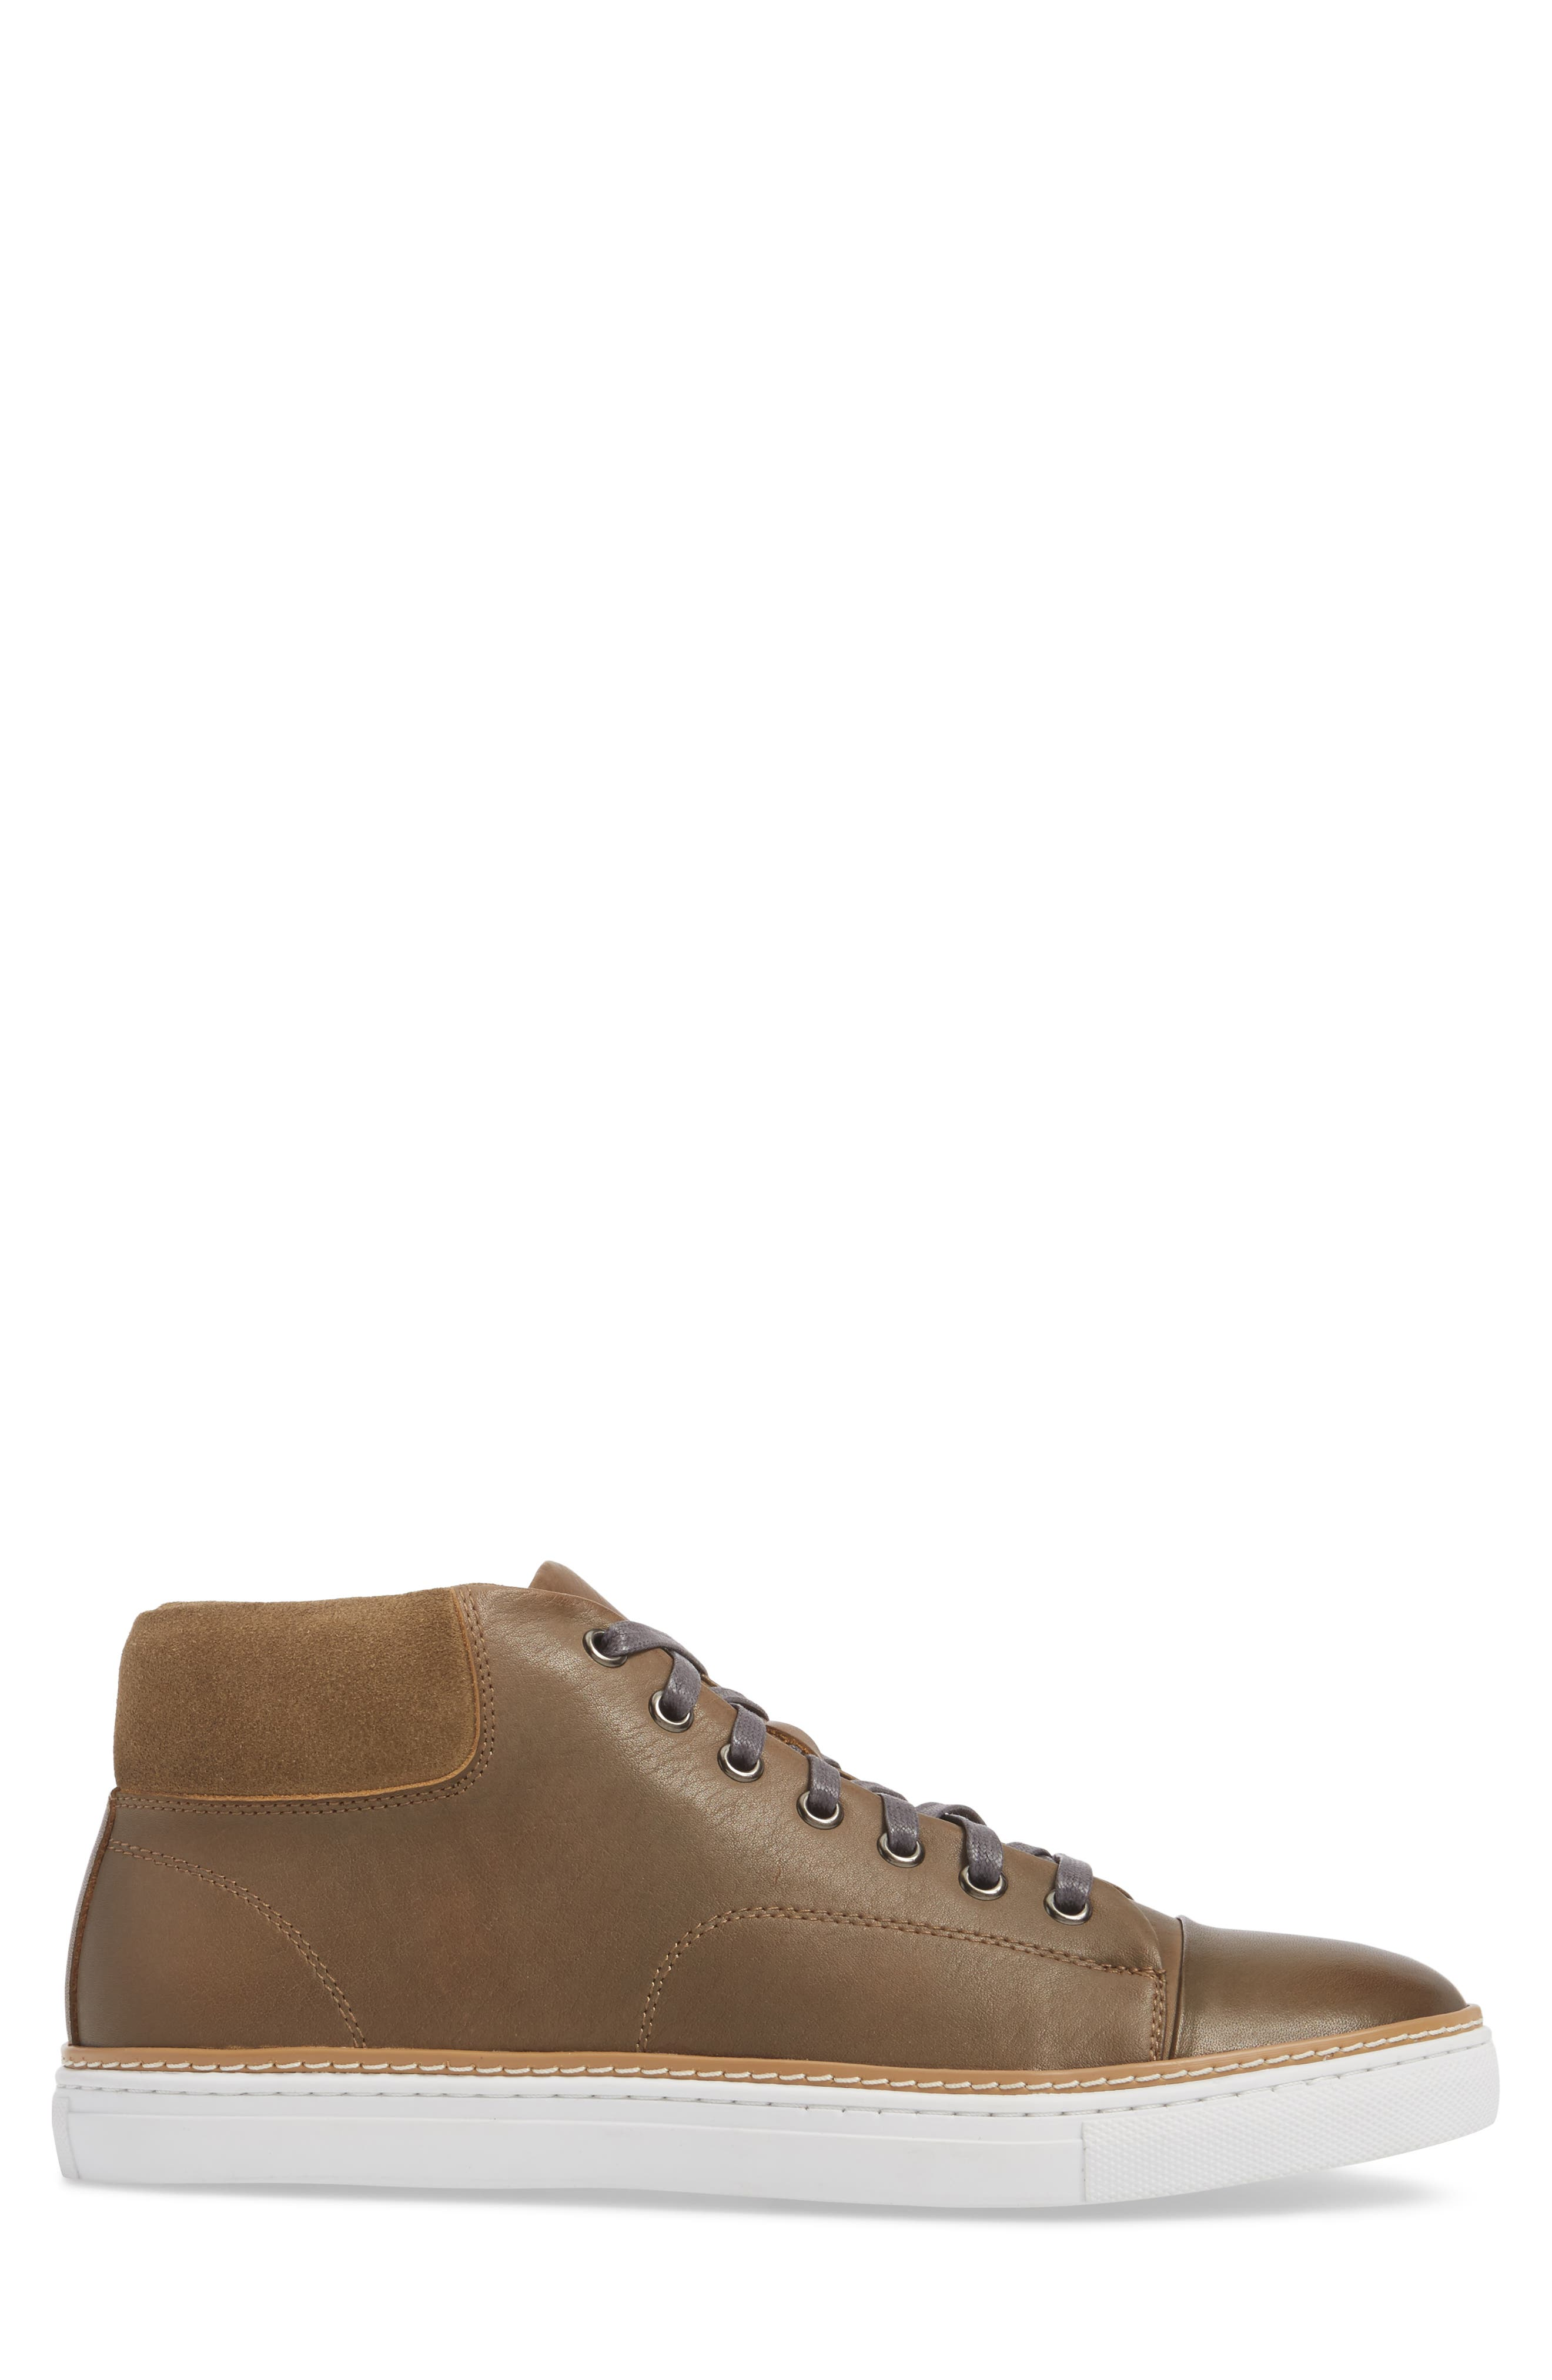 Grove Sneaker,                             Alternate thumbnail 3, color,                             Tan Leather